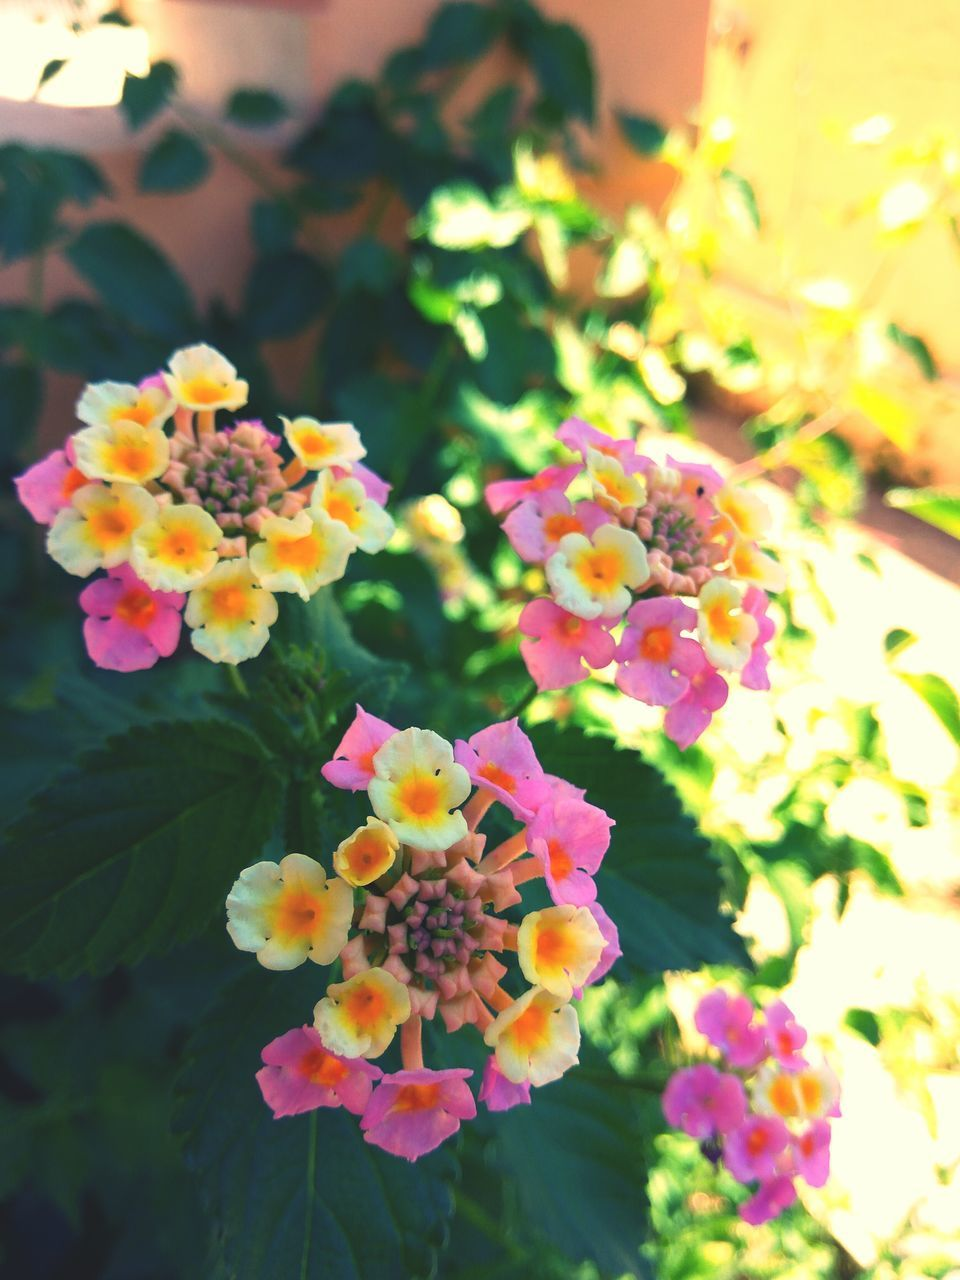 flower, beauty in nature, nature, fragility, growth, petal, lantana camara, plant, flower head, no people, freshness, day, outdoors, close-up, blooming